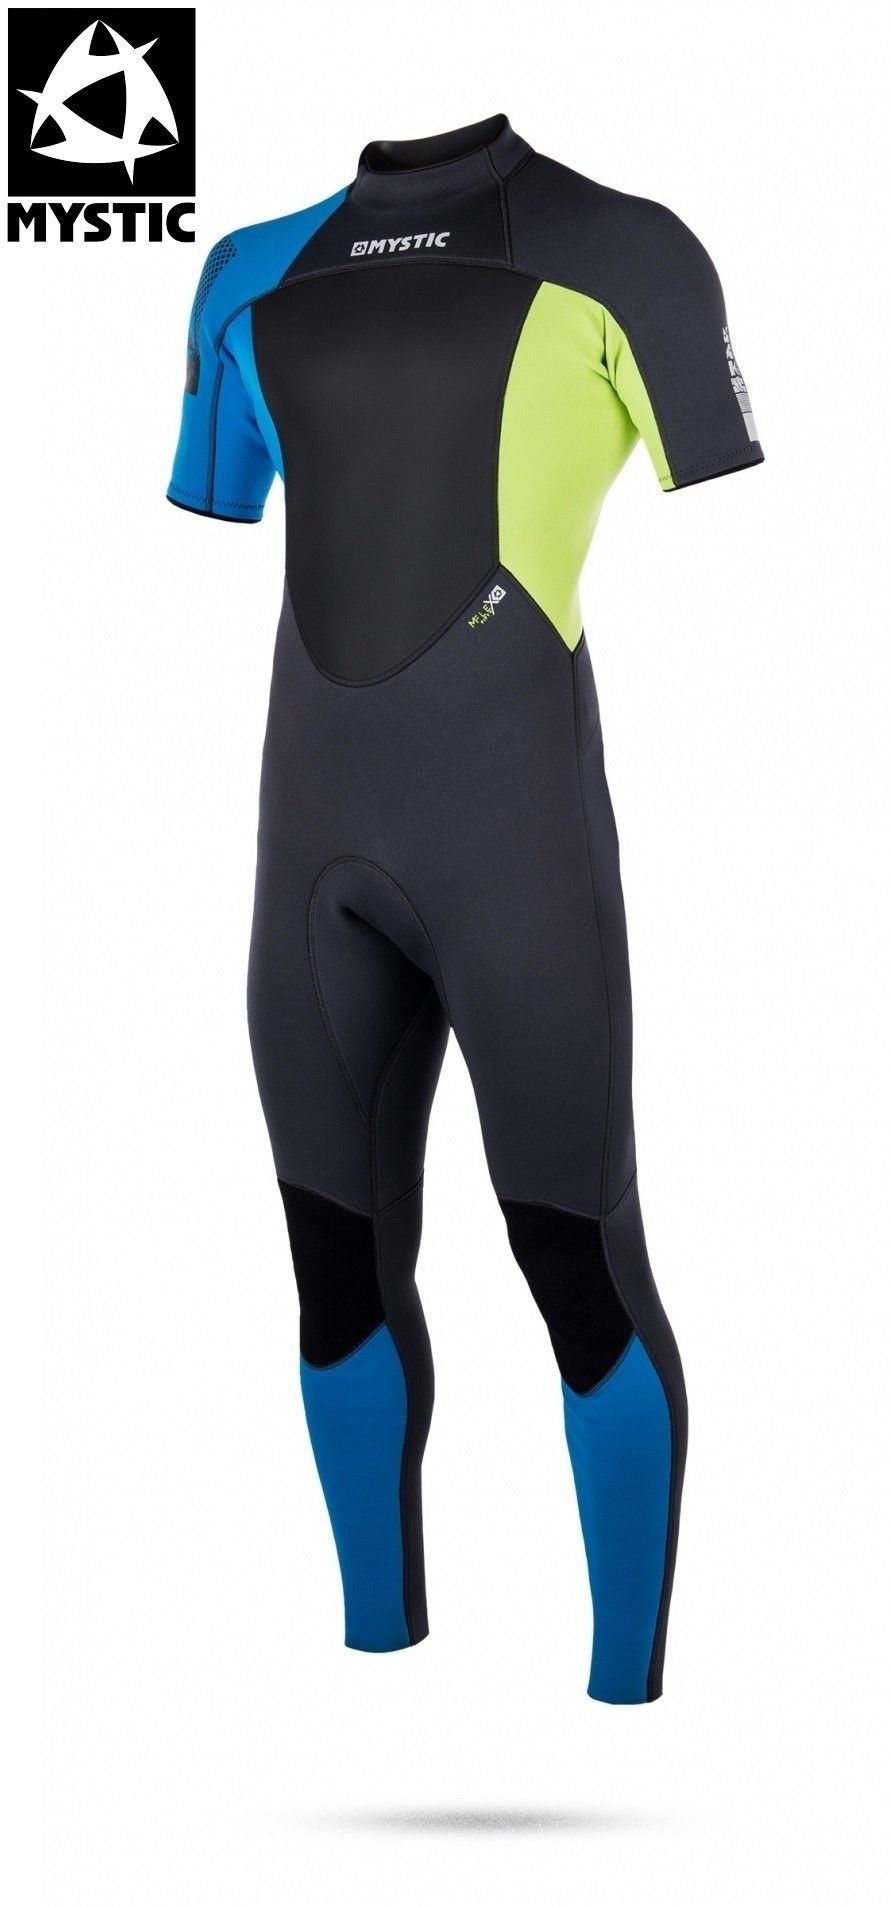 Mystic heren wetsuit Star short arm 3/2 back-zip